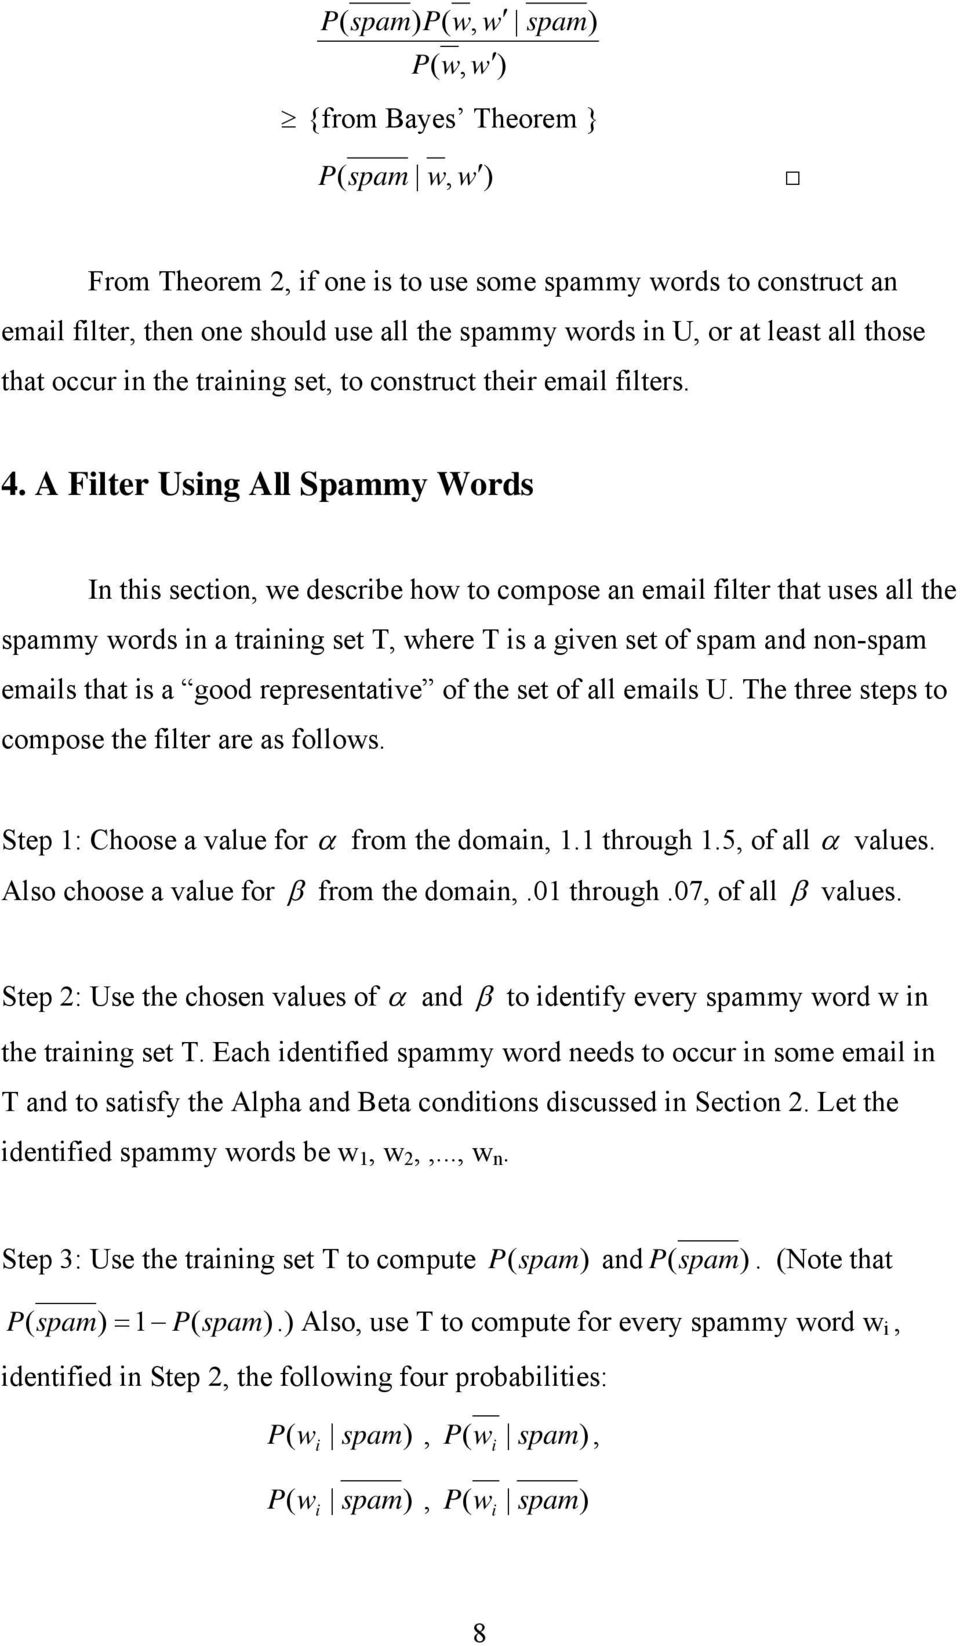 A Filter Using All Spammy Words In this section, we describe how to compose an email filter that uses all the spammy words in a training set T, where T is a given set of spam and non-spam emails that